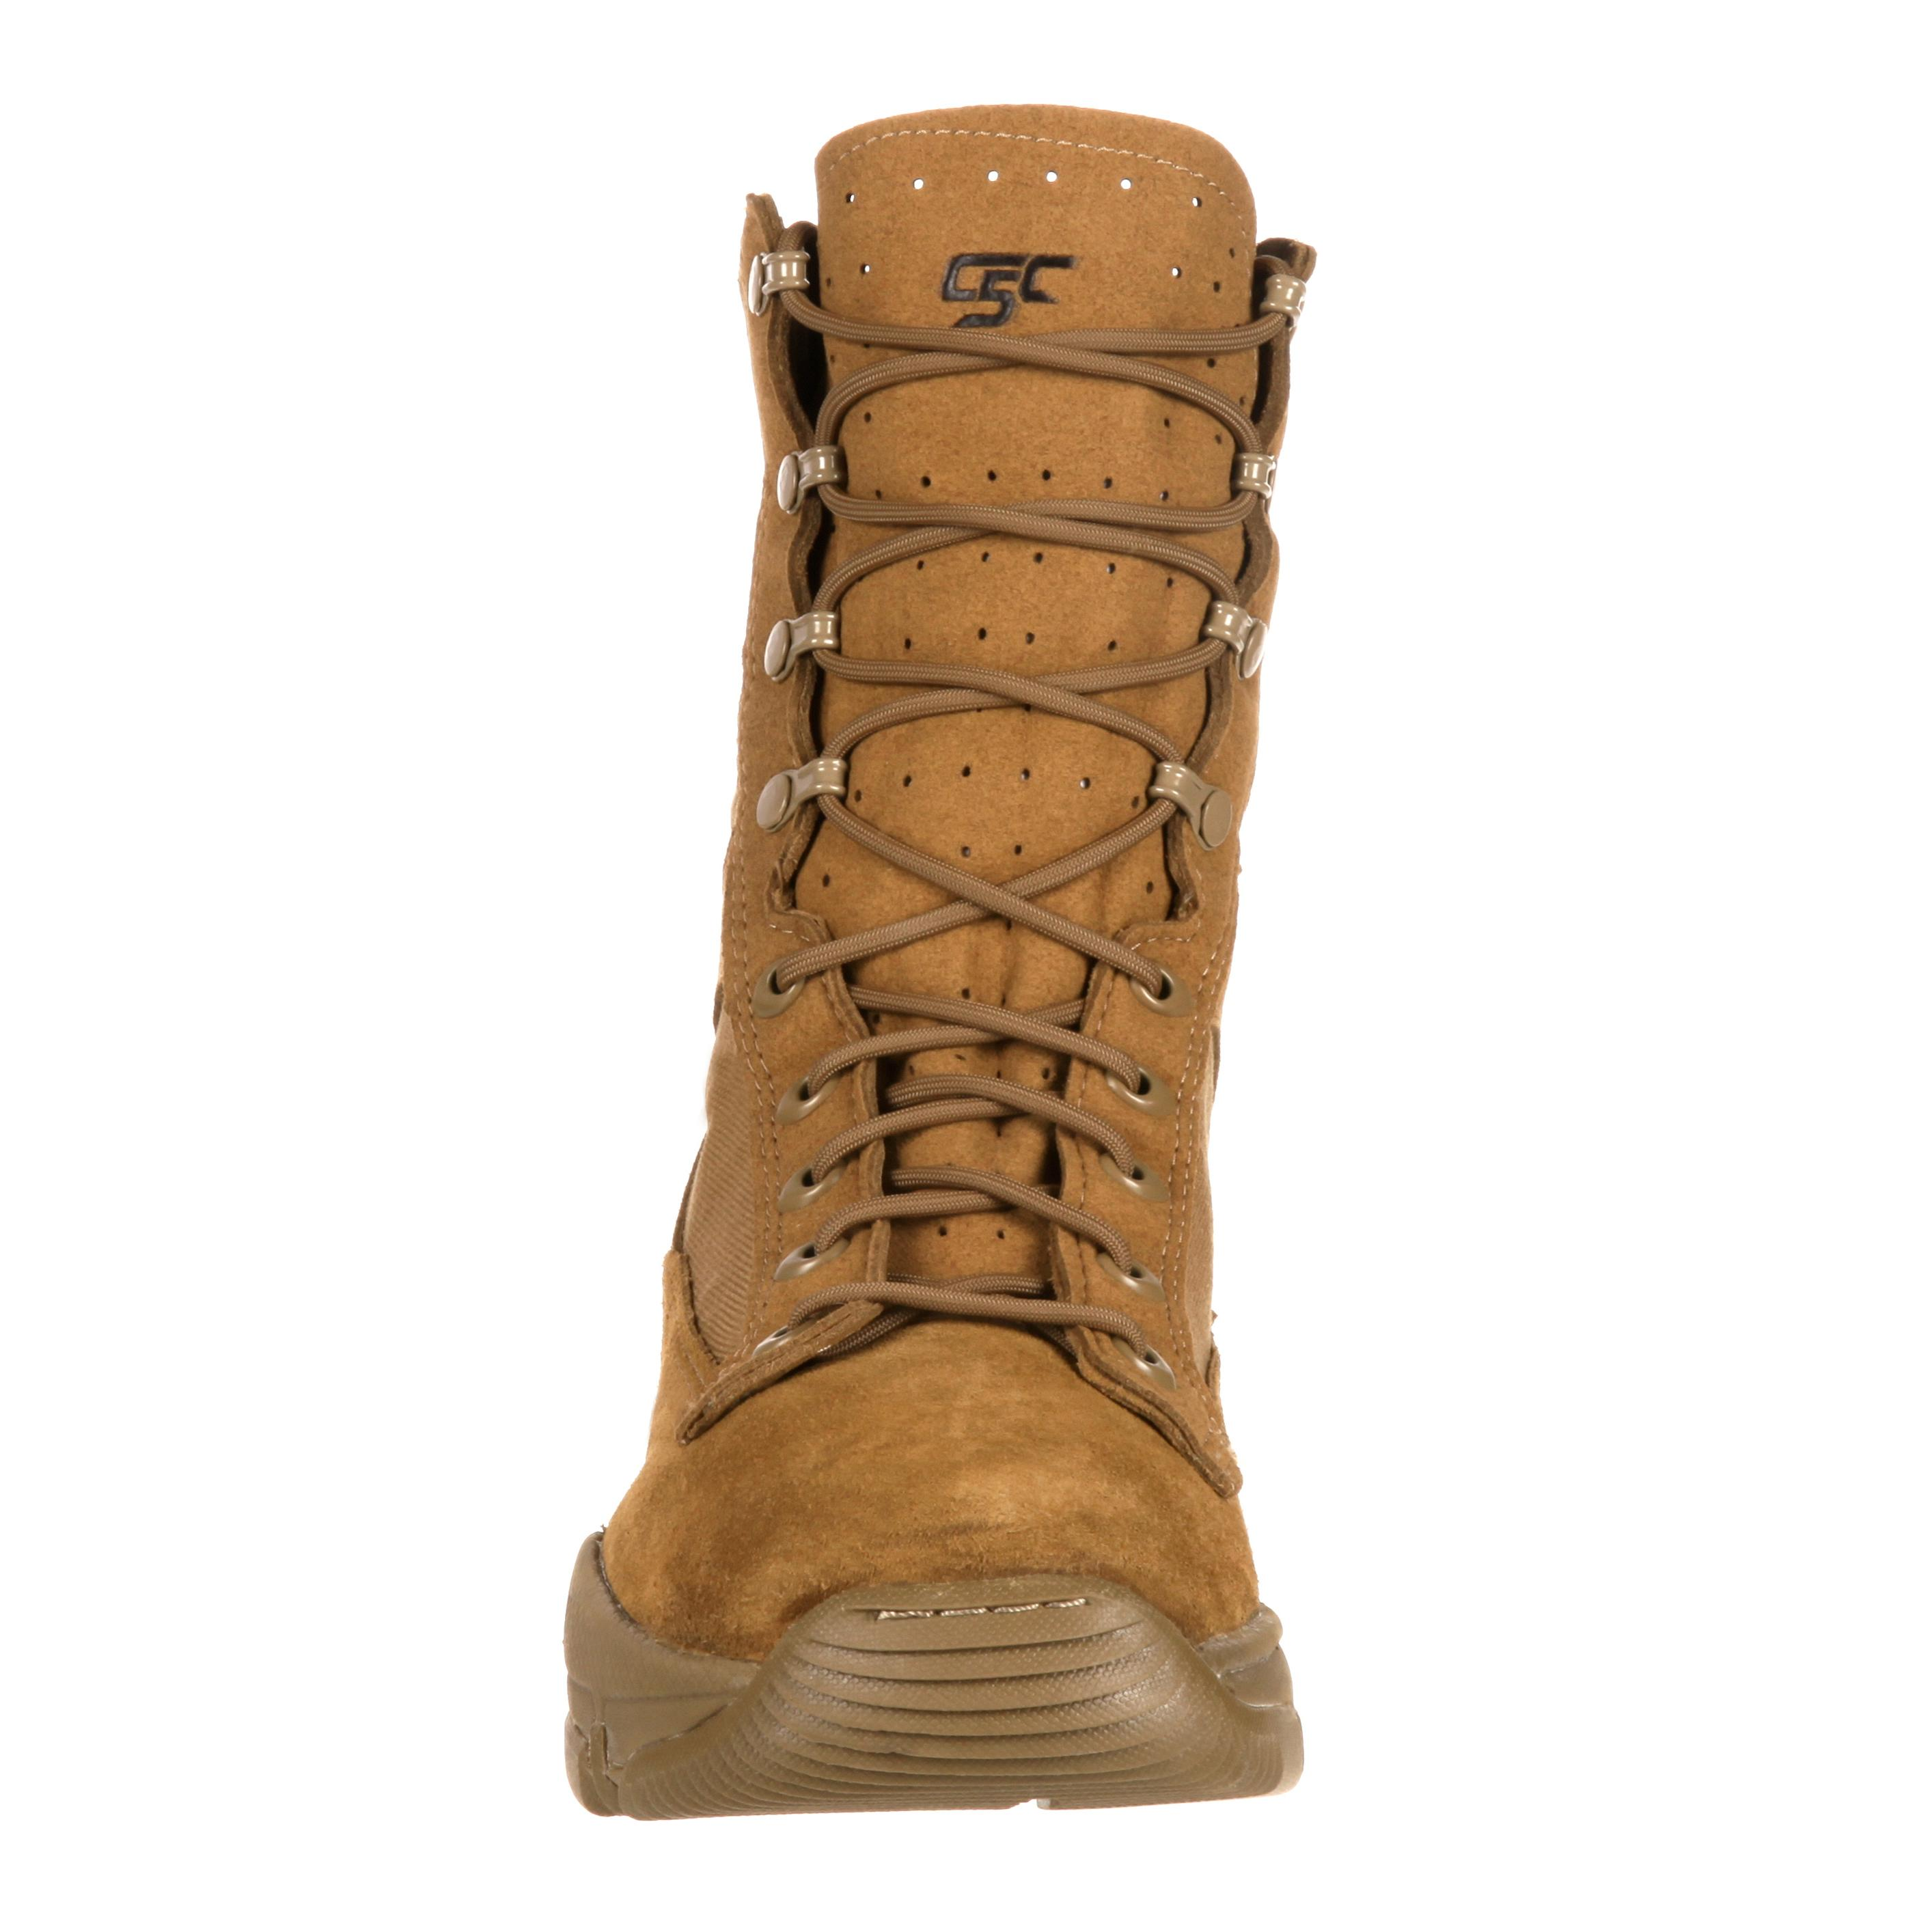 7803494f139 Rocky C5C Commercial Military Boot